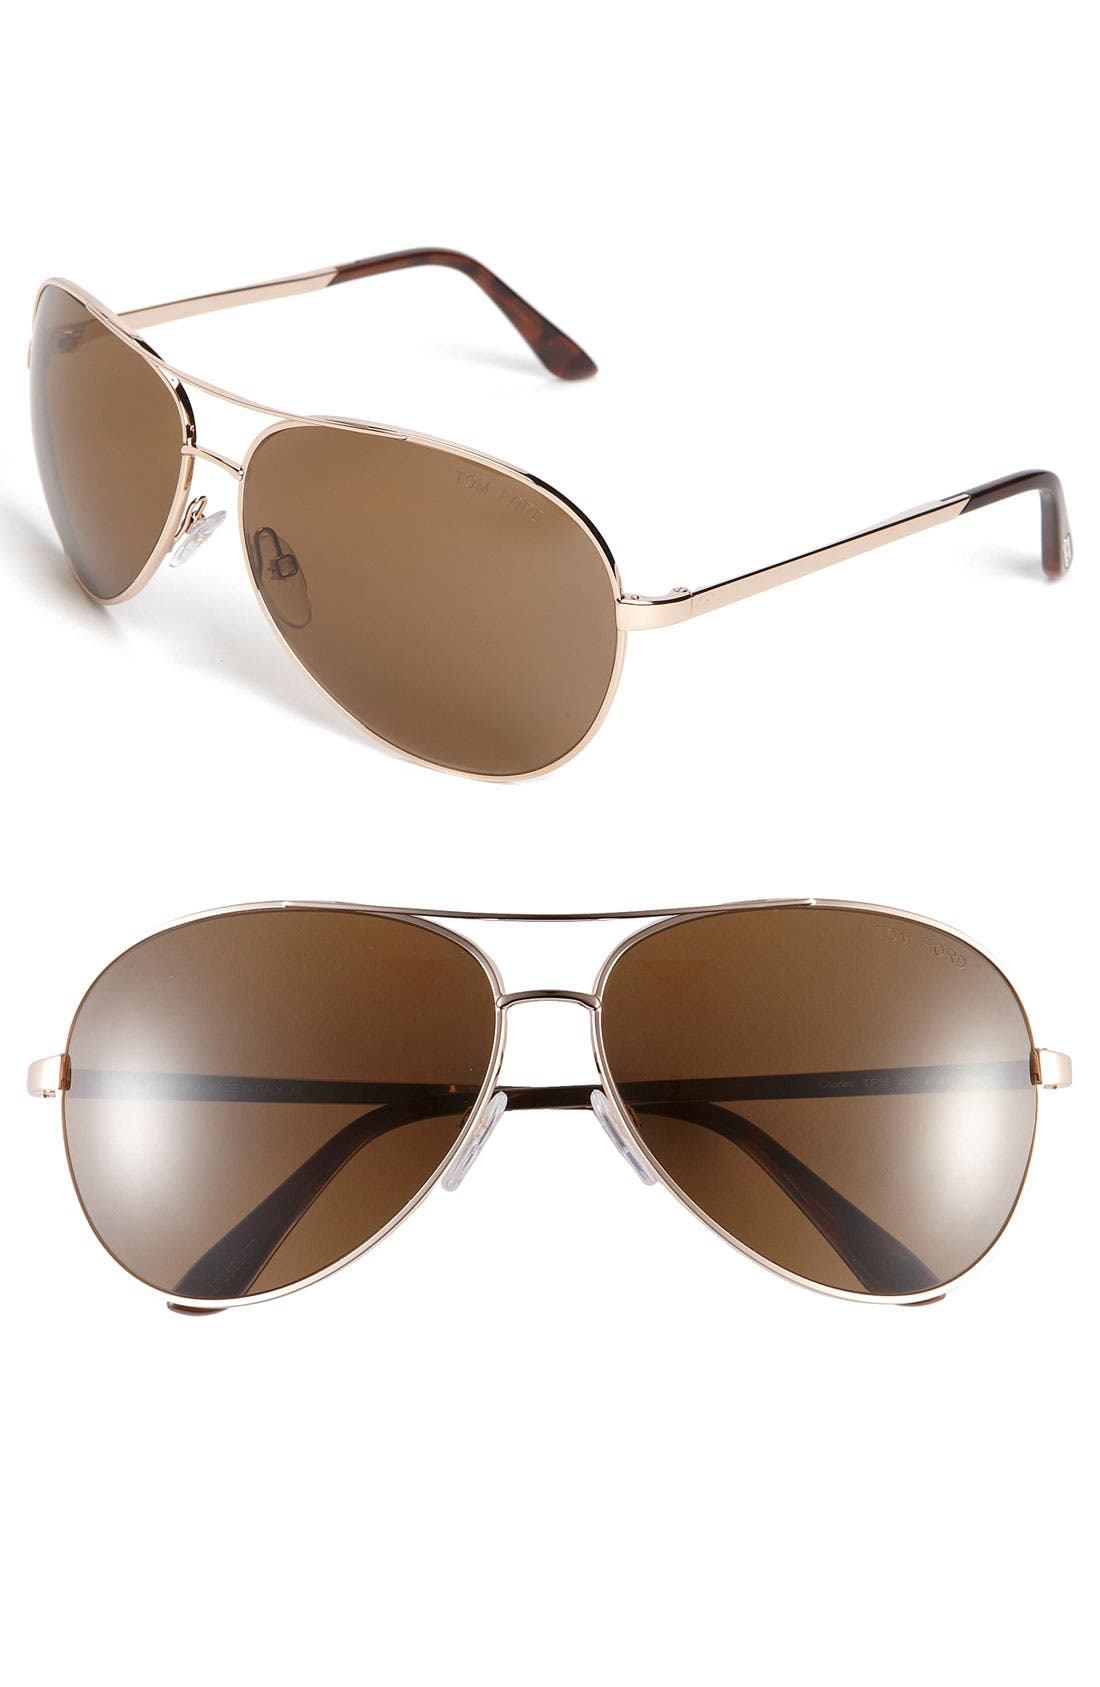 Main Image - Tom Ford 'Charles' 62mm Polarized Sunglasses